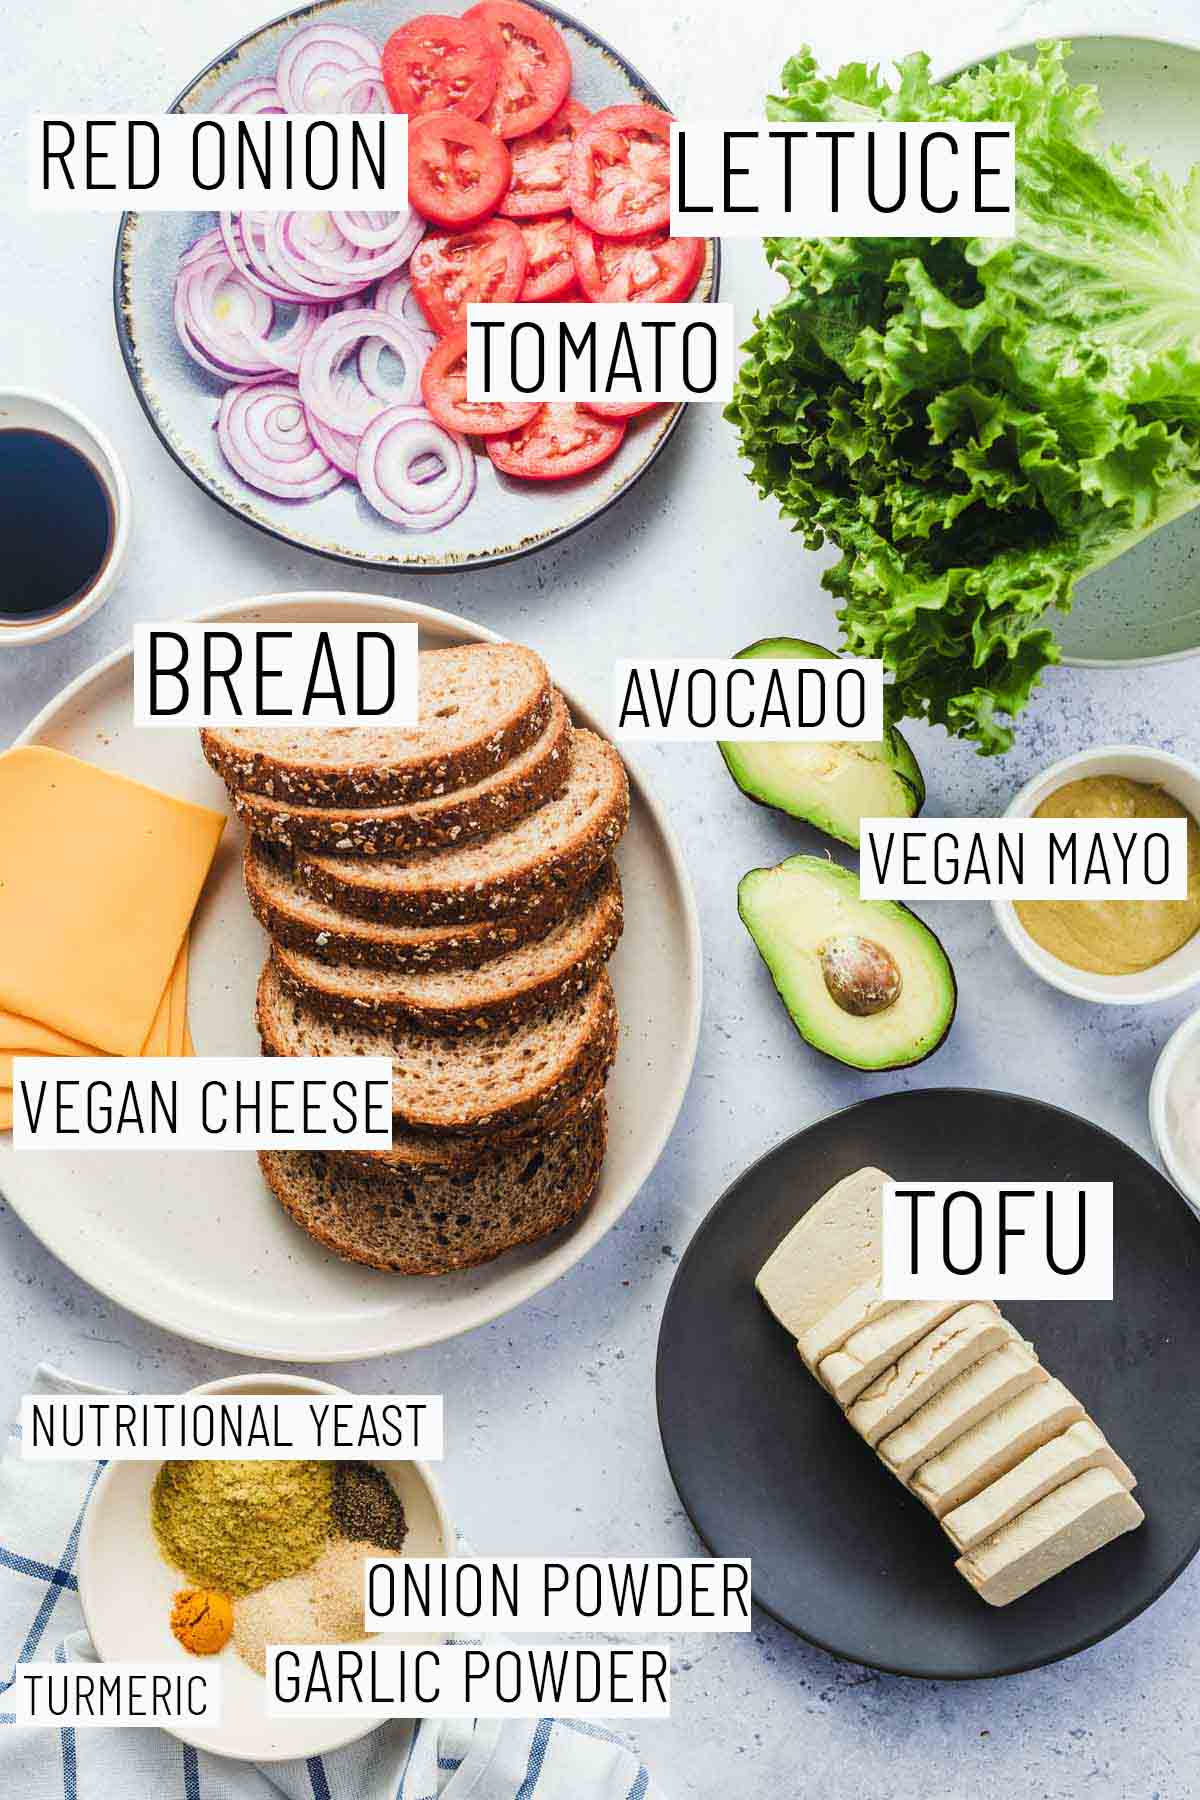 Flat lay image of portioned recipe ingredients including bread, cheese, mayo, tofu, lettuce, tomato, red onion, and seasonings.